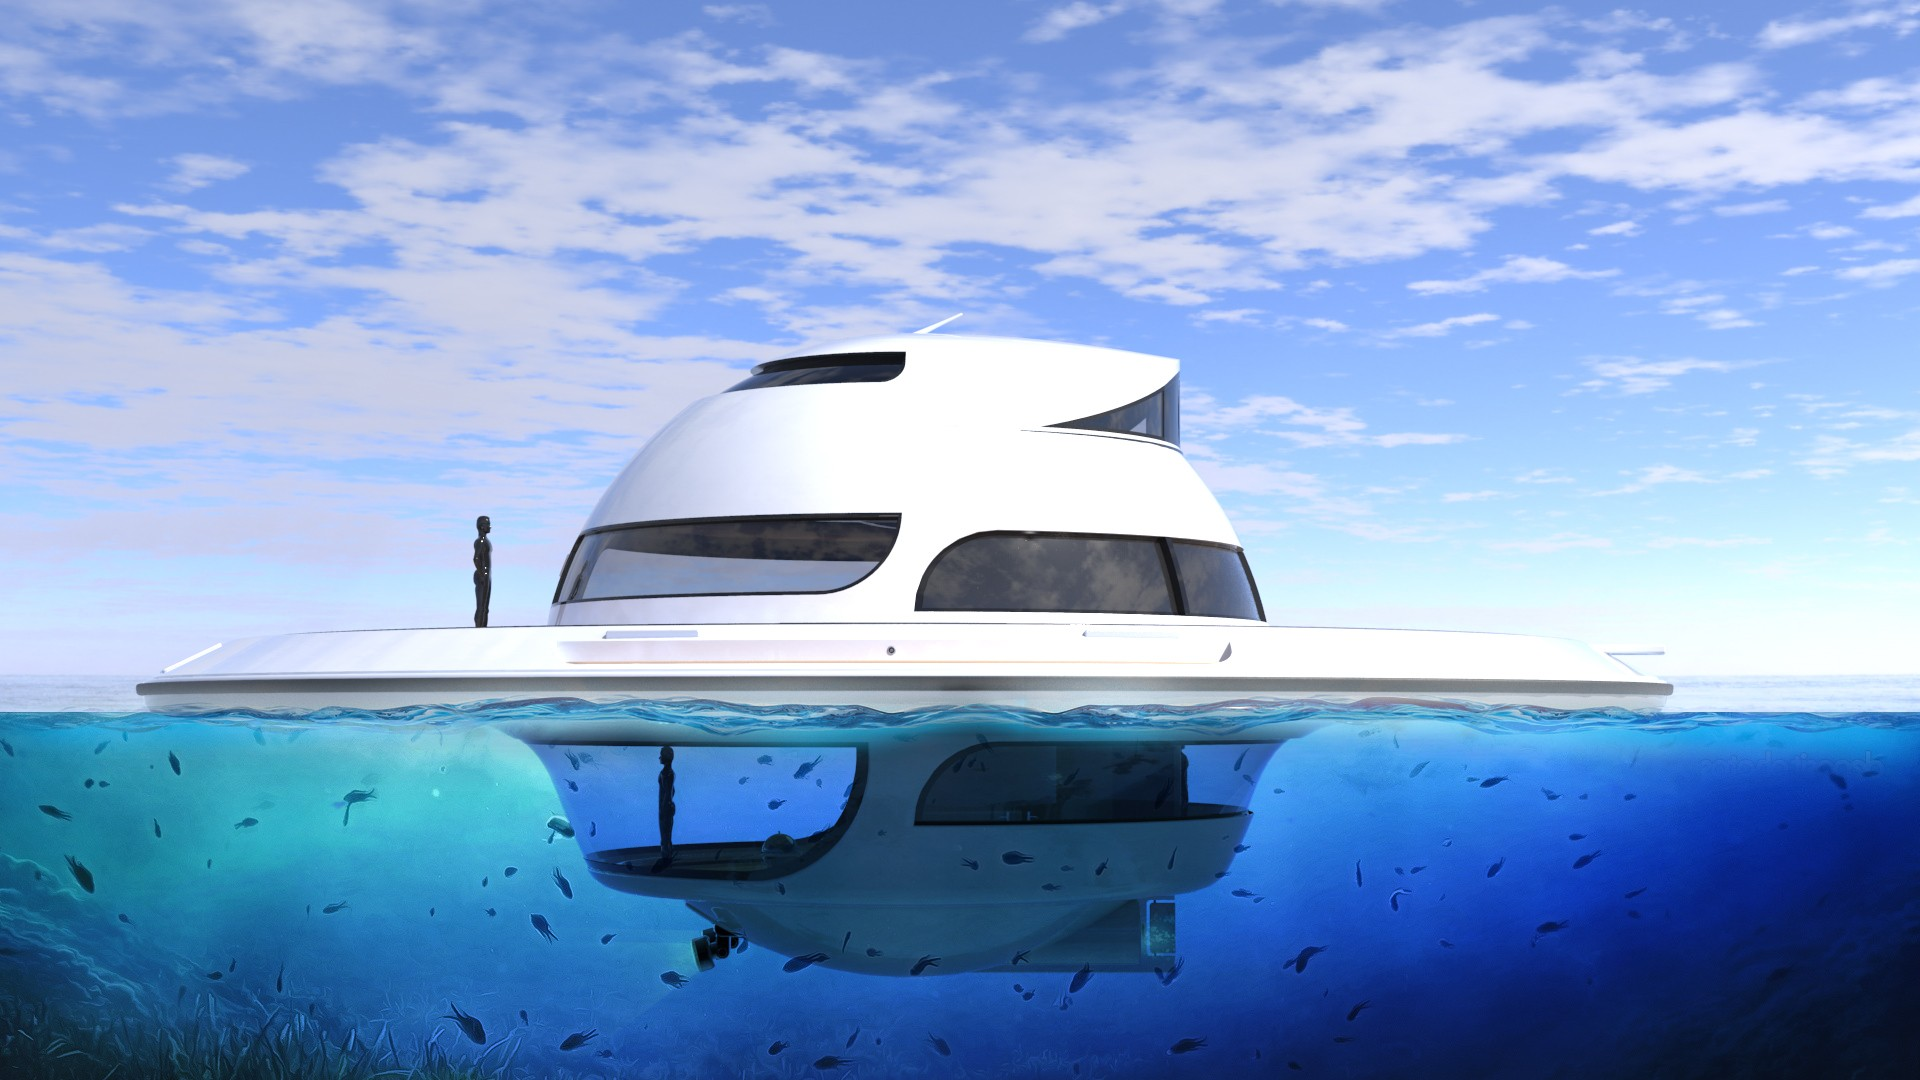 U F O Is The Self Sufficient Luxury Houseboat You Will Never Want To Leave Autoevolution